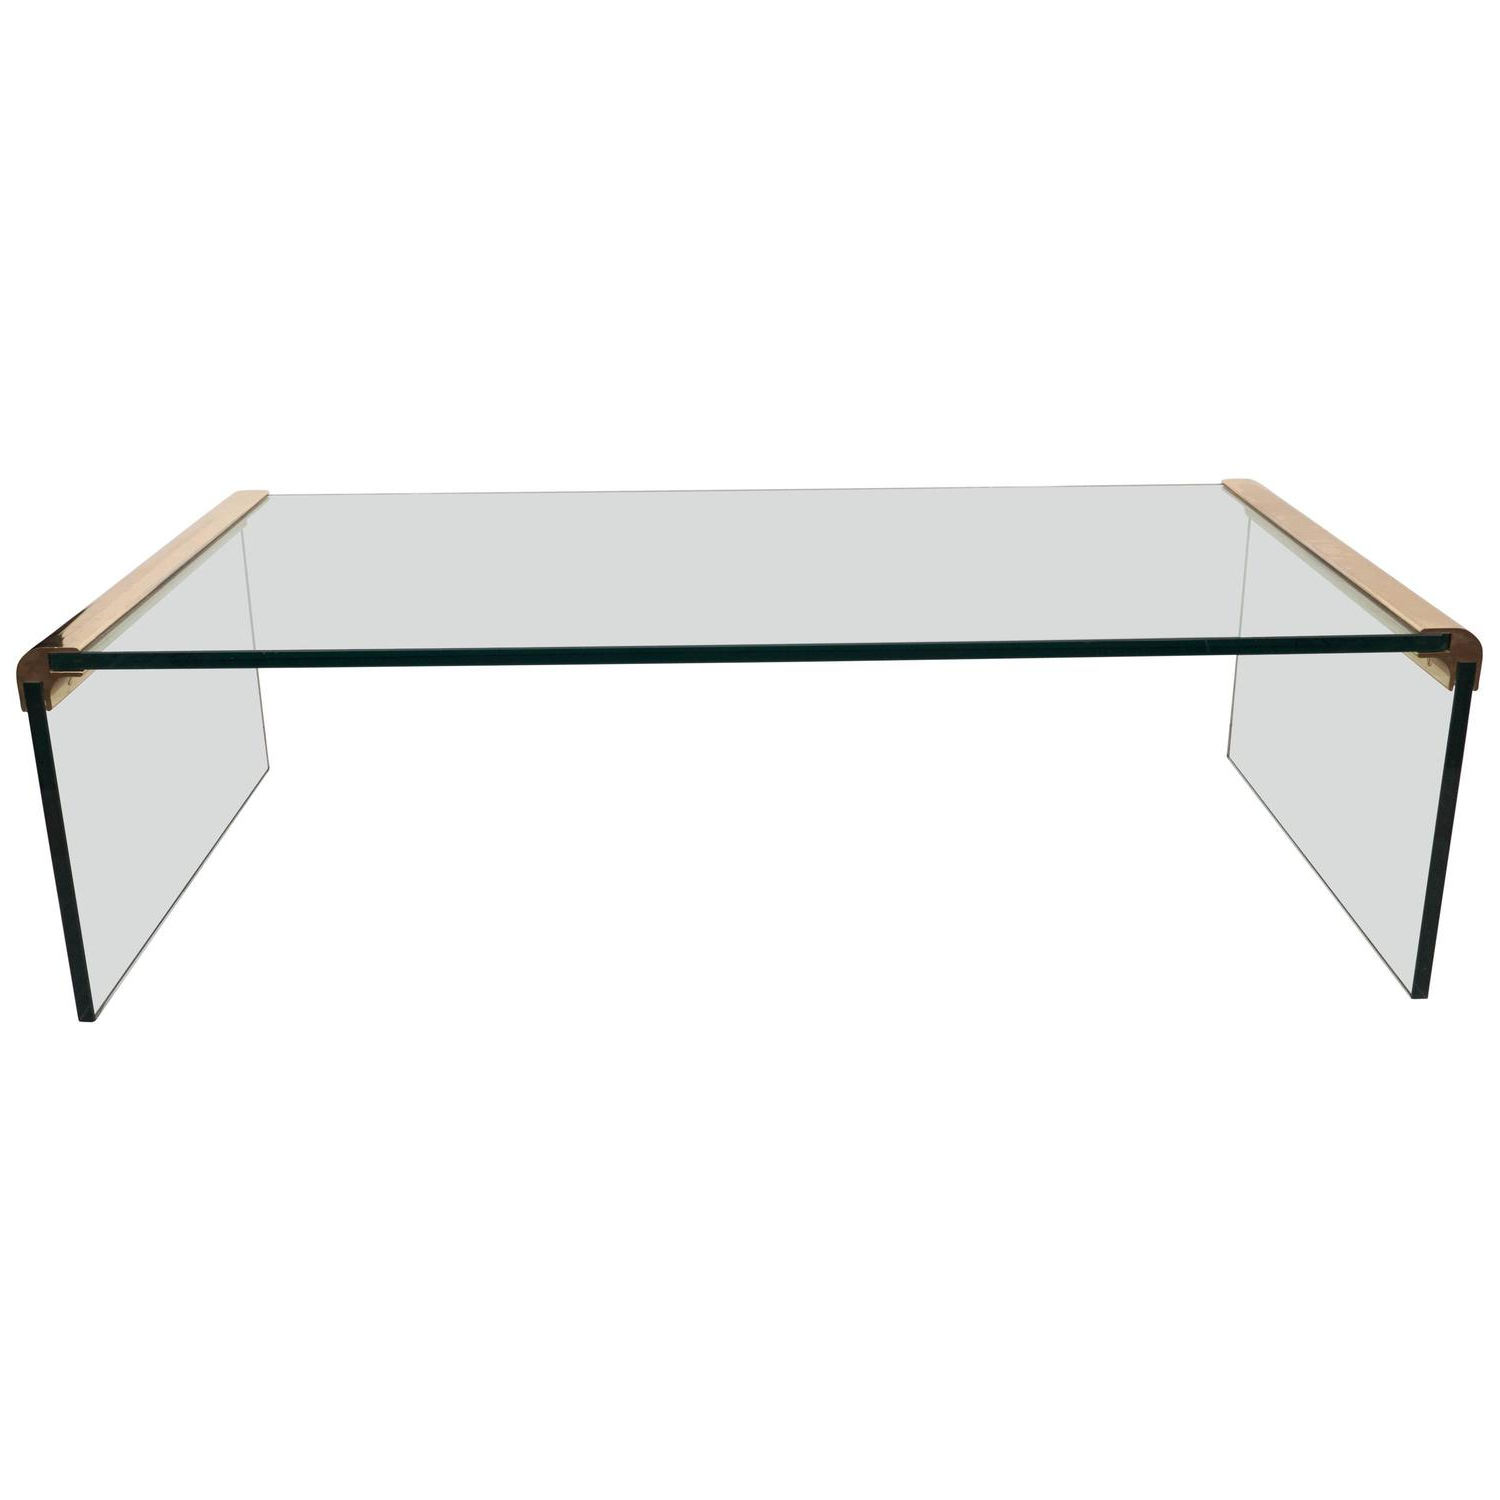 Waterfall Coffee Tables With Regard To 2019 Pace Collection Glass Waterfall Coffee Table With Brass Trim At 1Stdibs (View 17 of 20)